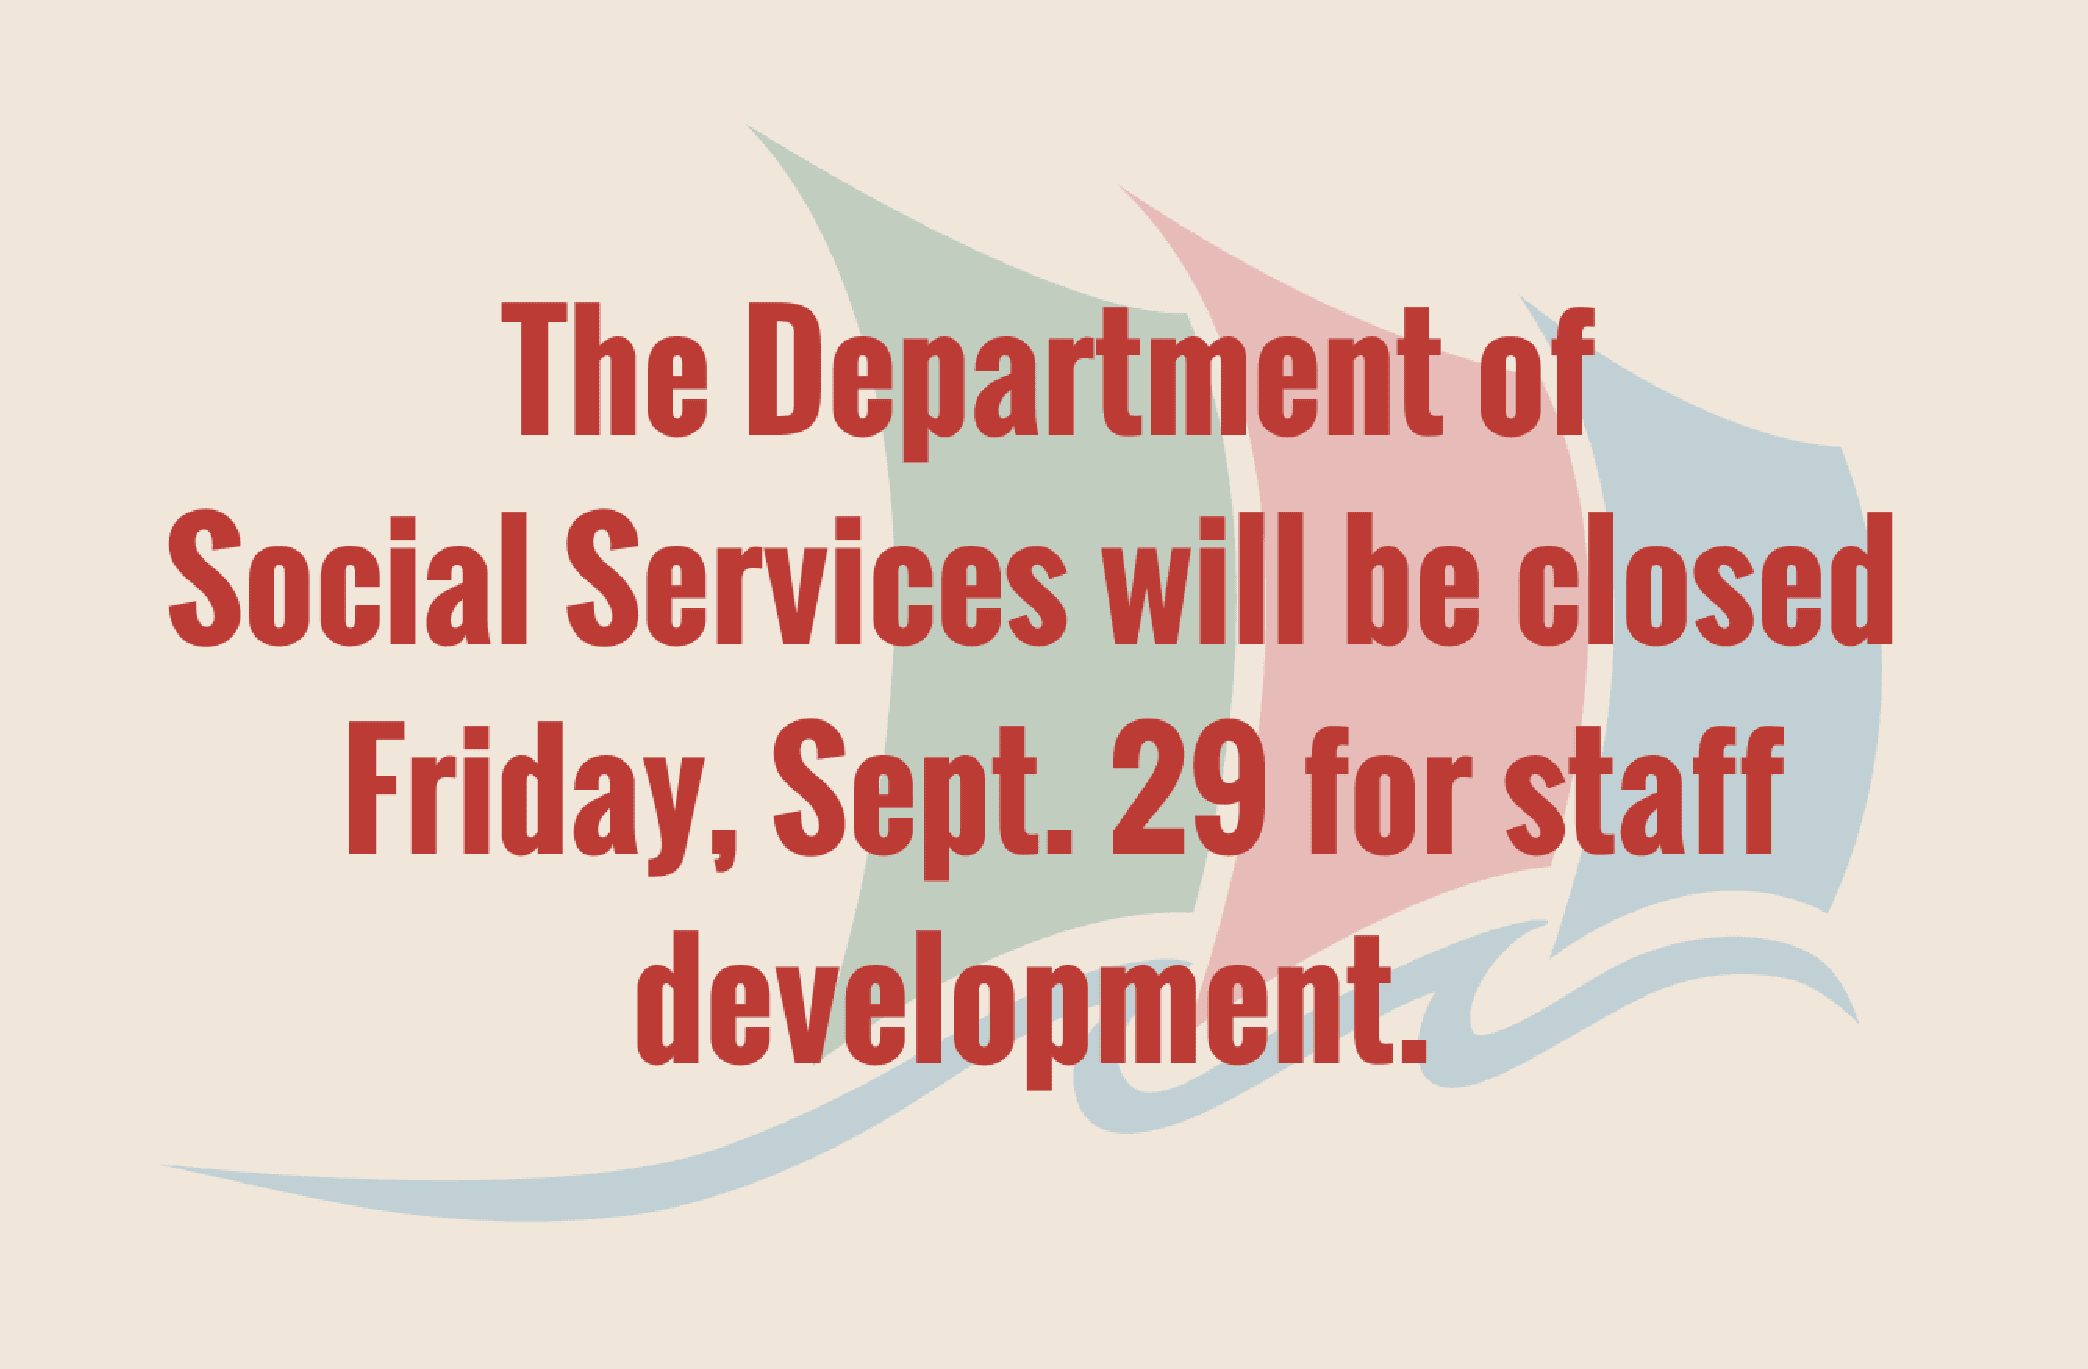 The Department of Social Services will be closed Friday, Sept. 29 for staff development.